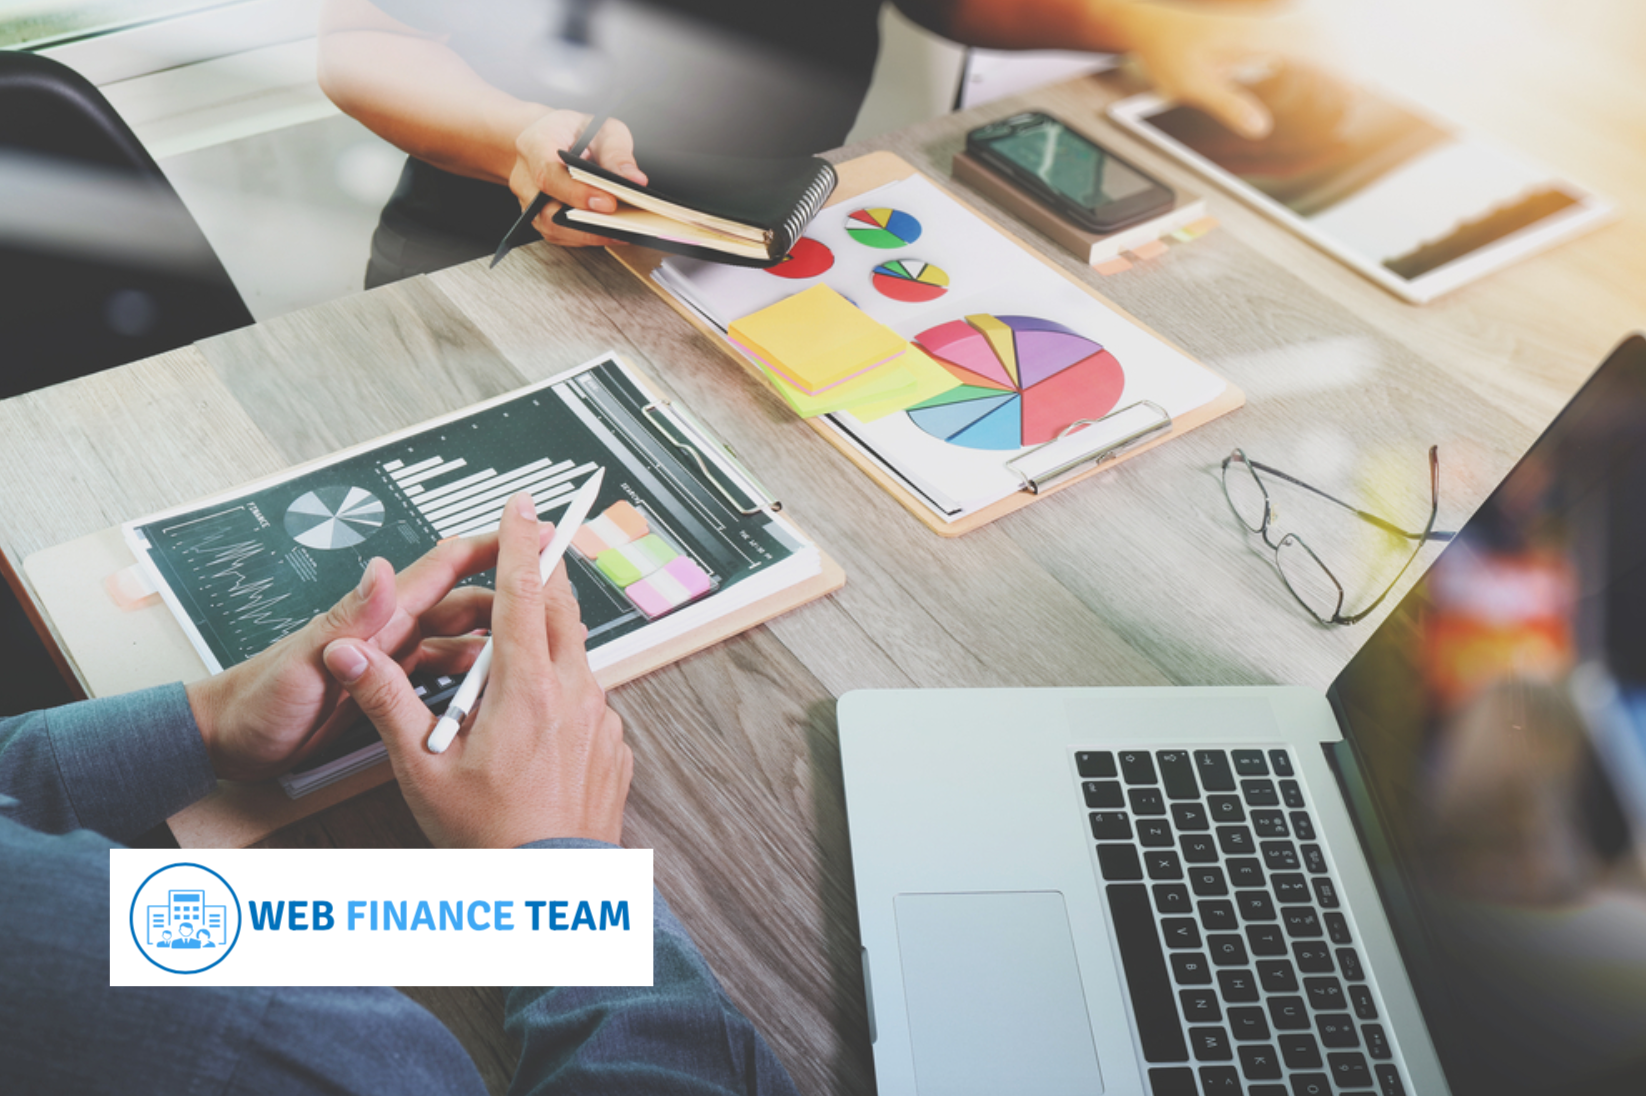 Web Finance Team Is A Game-Changer When It Comes To Running Your Business